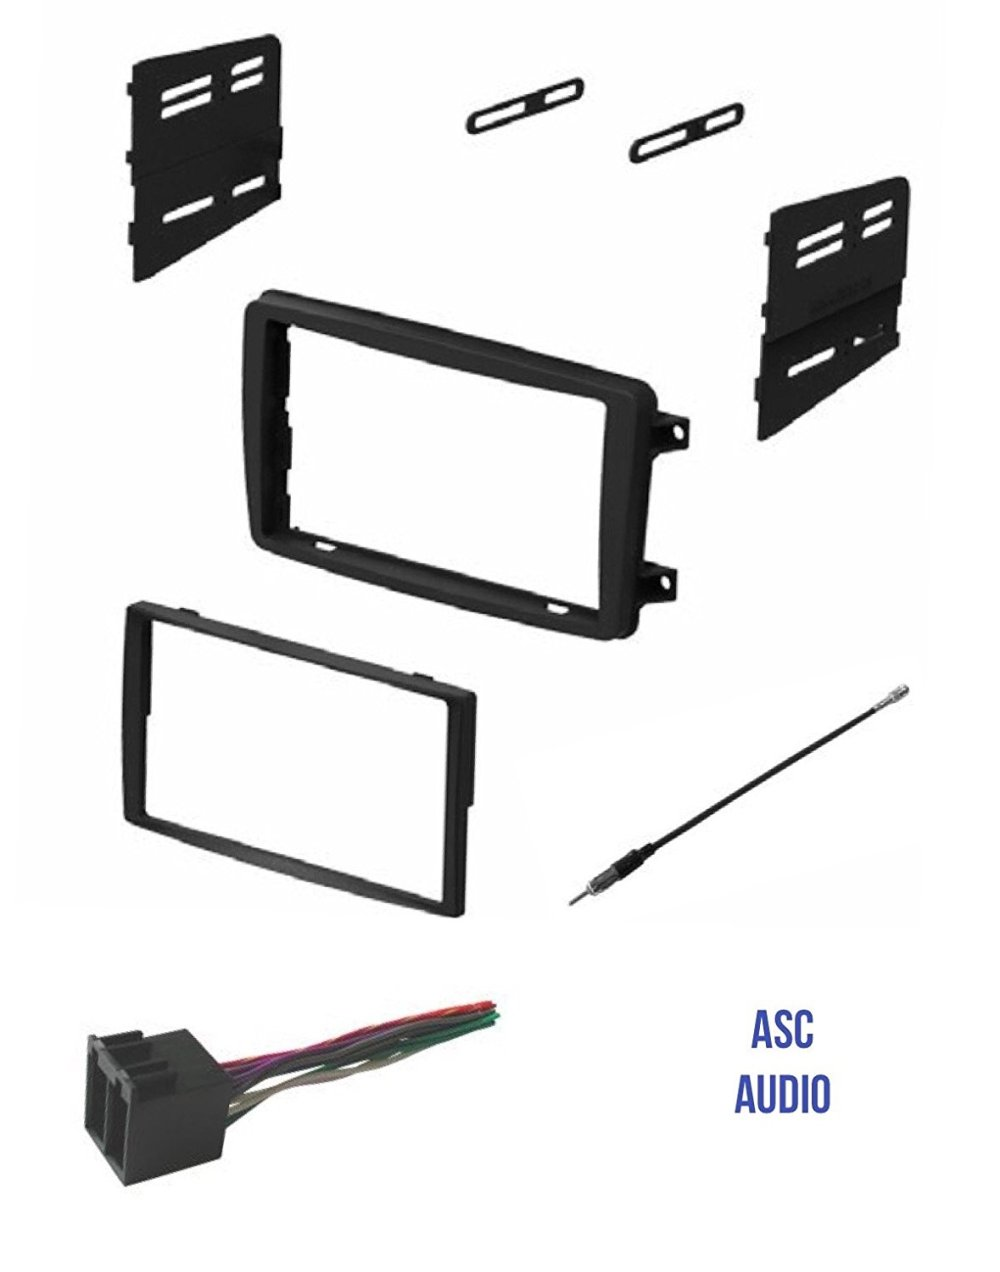 medium resolution of asc audio car stereo radio install dash kit wire harness and antenna adapter to install a double din radio for some 2001 2002 2003 2004 mercedes c class